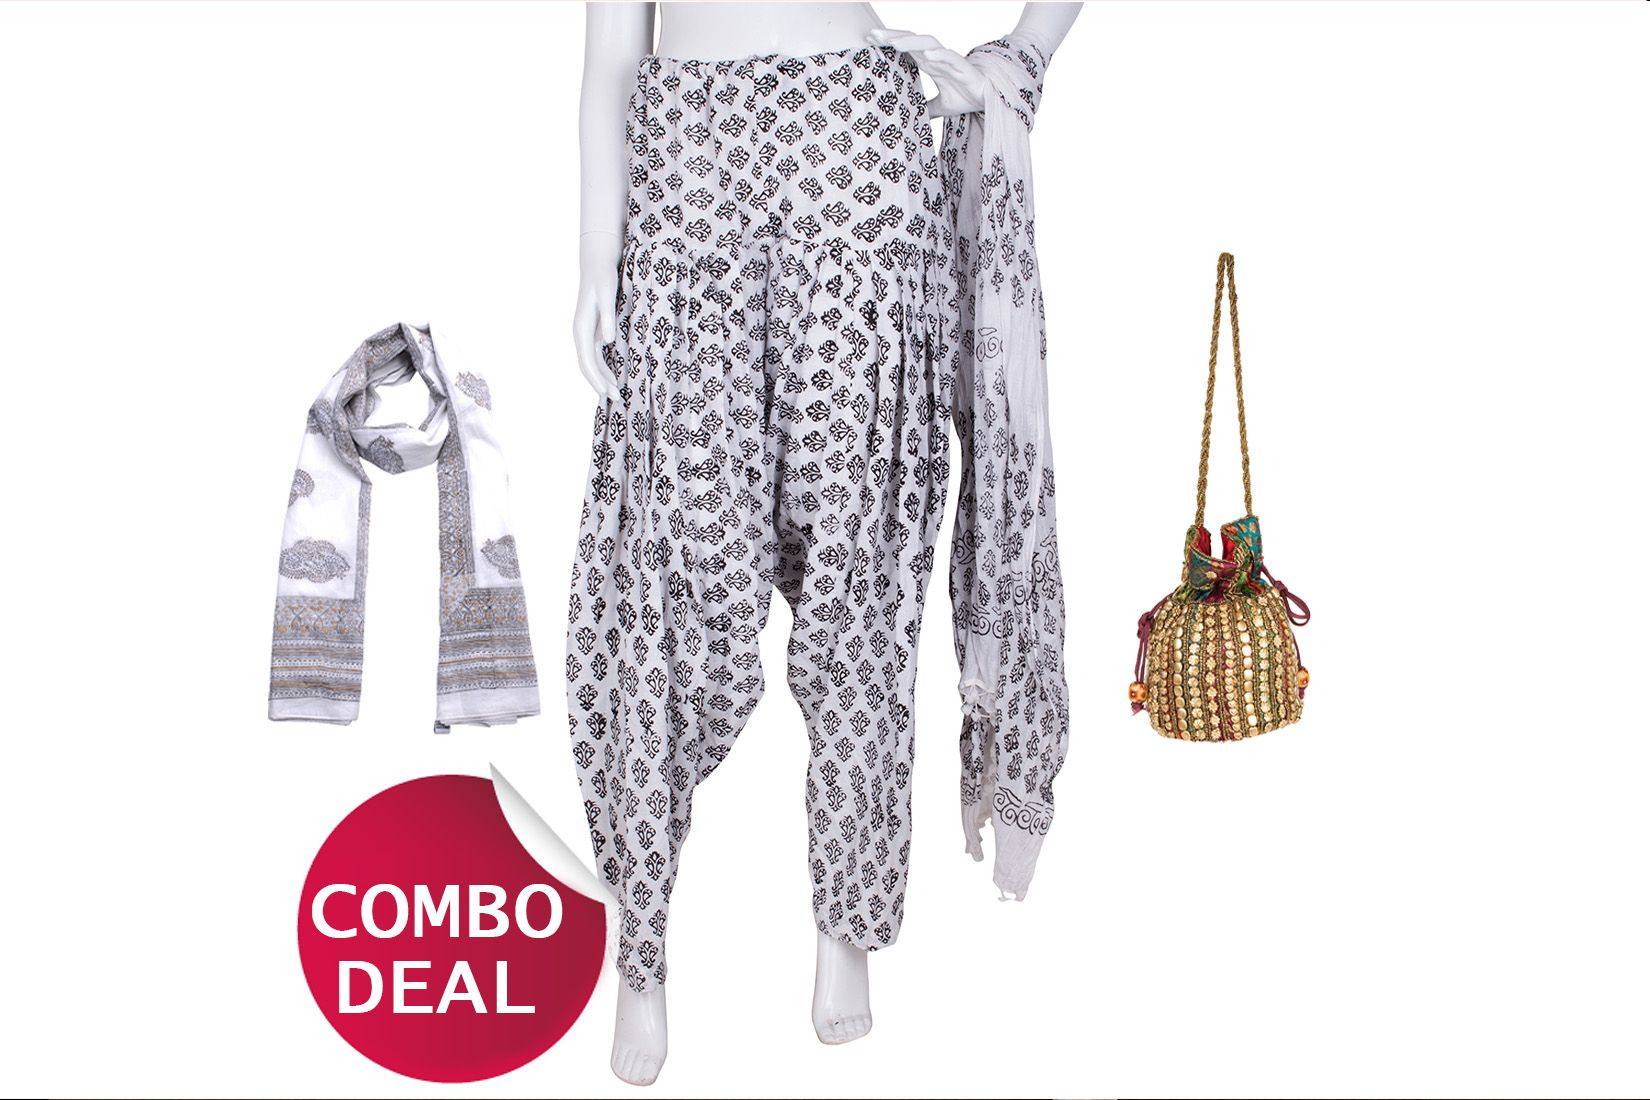 COMBO2 - Set of Scarf, Salwar, Dupatta and Potli Bag